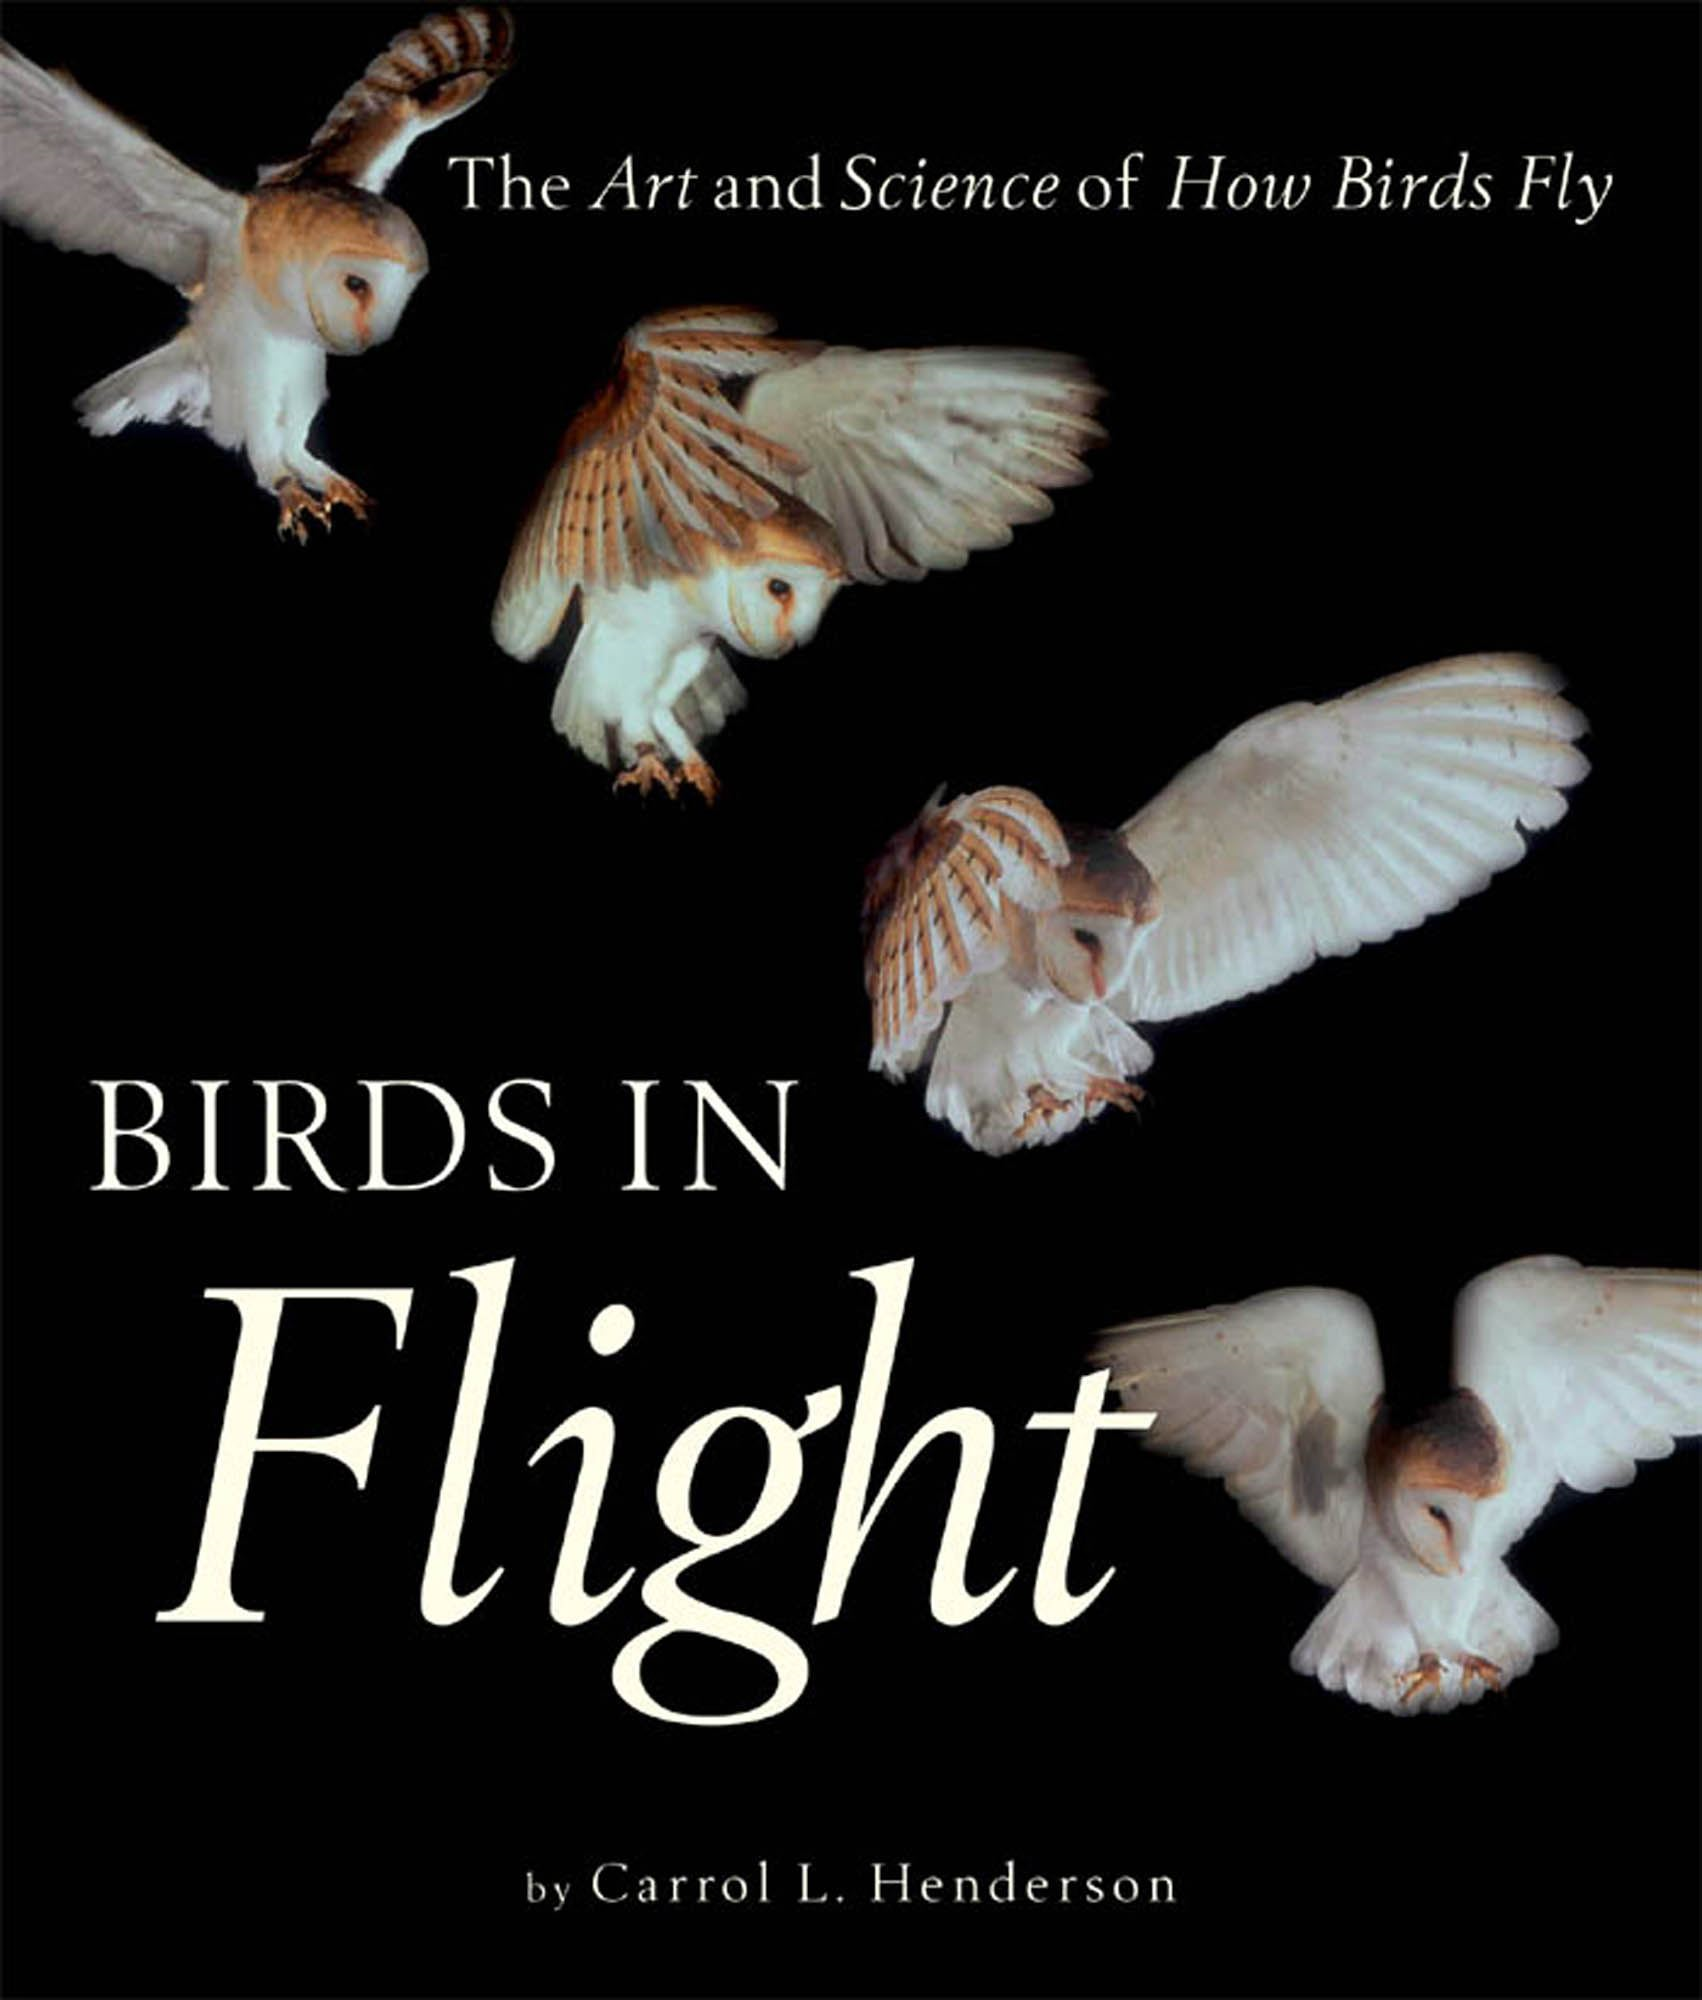 Birds in Flight: The Art and Science of How Birds Fly